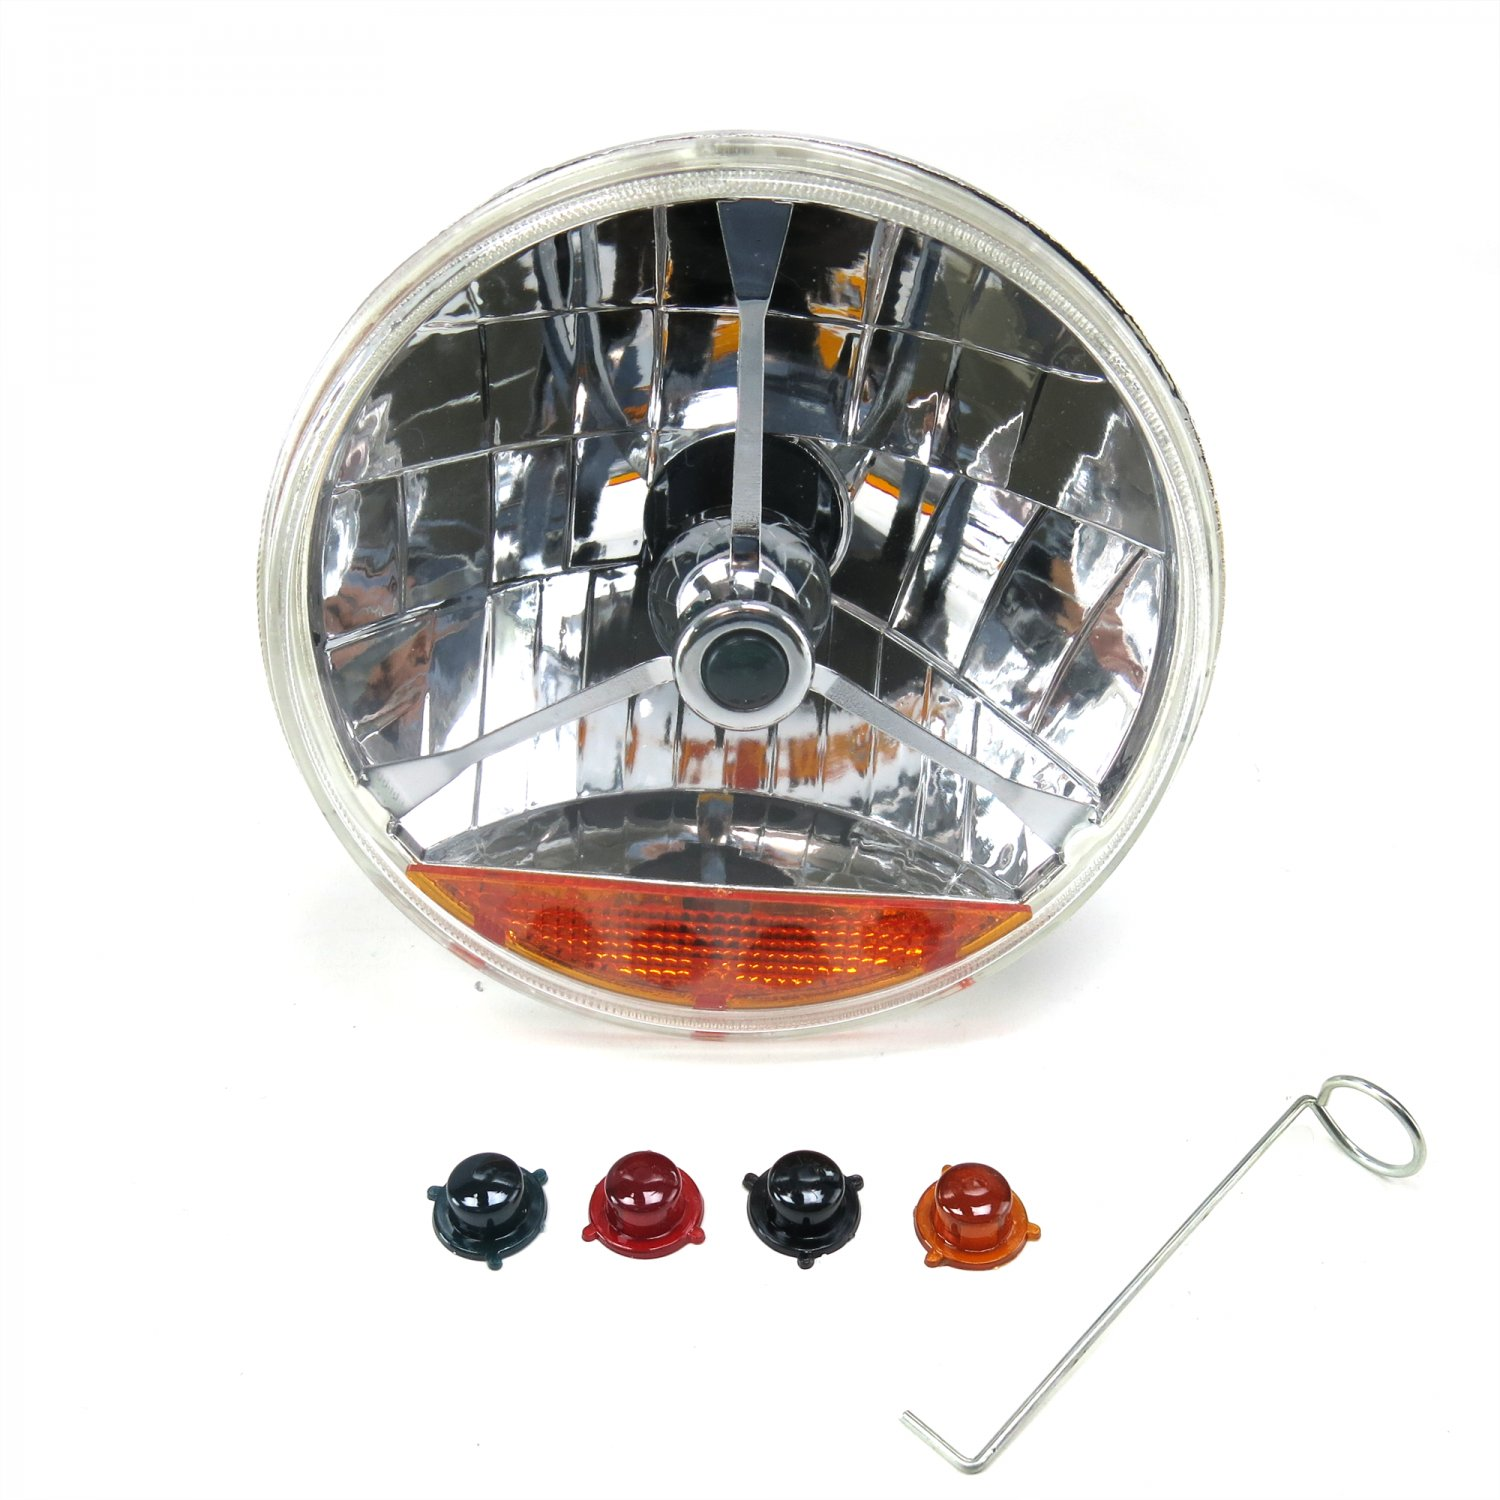 Autoloc ri-ar 7 nch alogen ens ssembly w/ 4 bulb and mber...